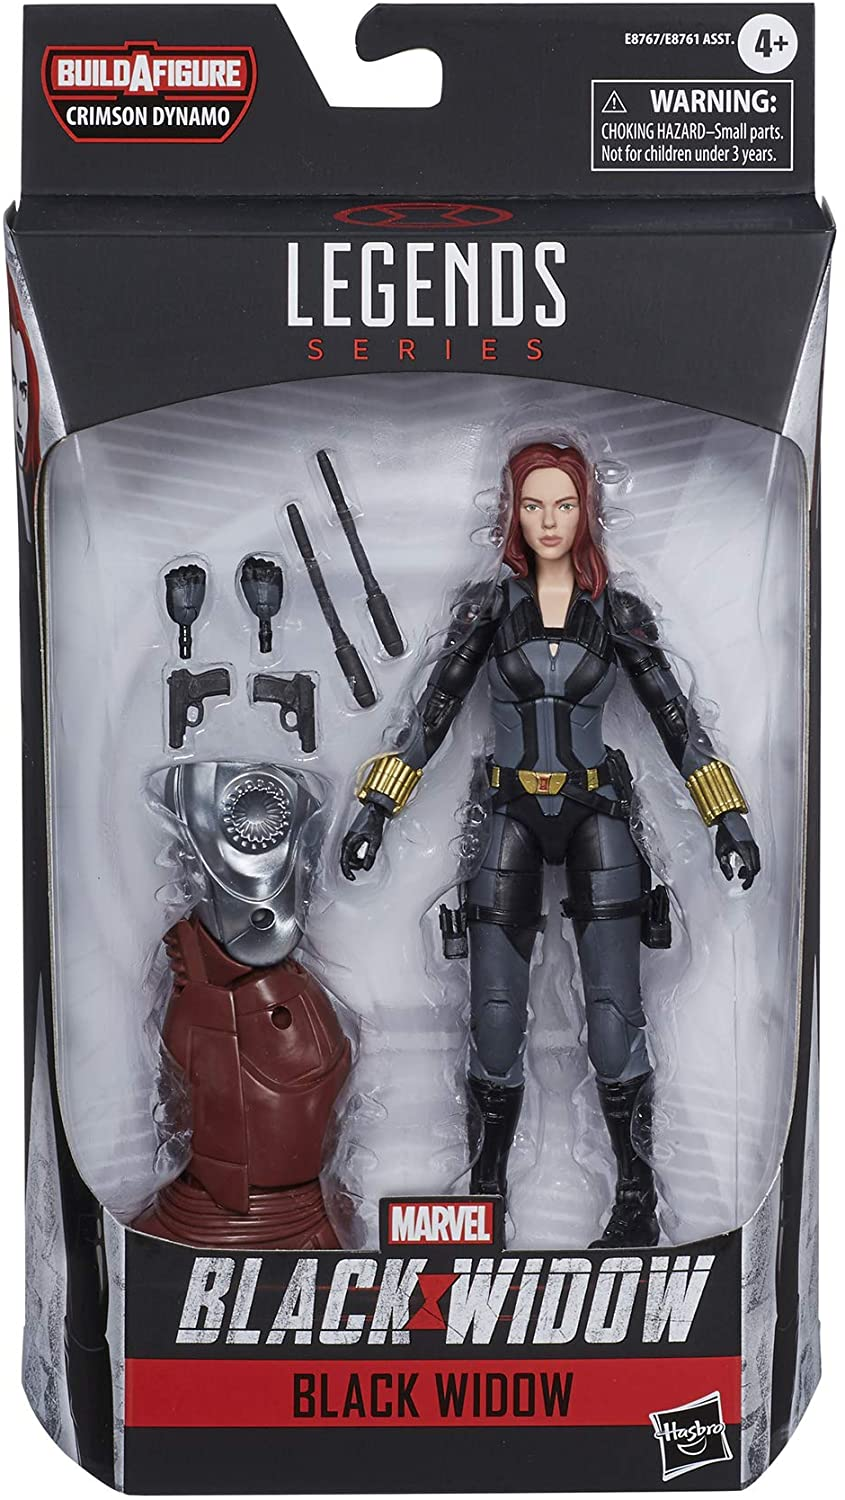 Marvel Hasbro Black Widow Legends Series 6-inch Collectible Black Widow Action Figure Toy, Premium Design, 6 Accessories, Ages 4 and Up